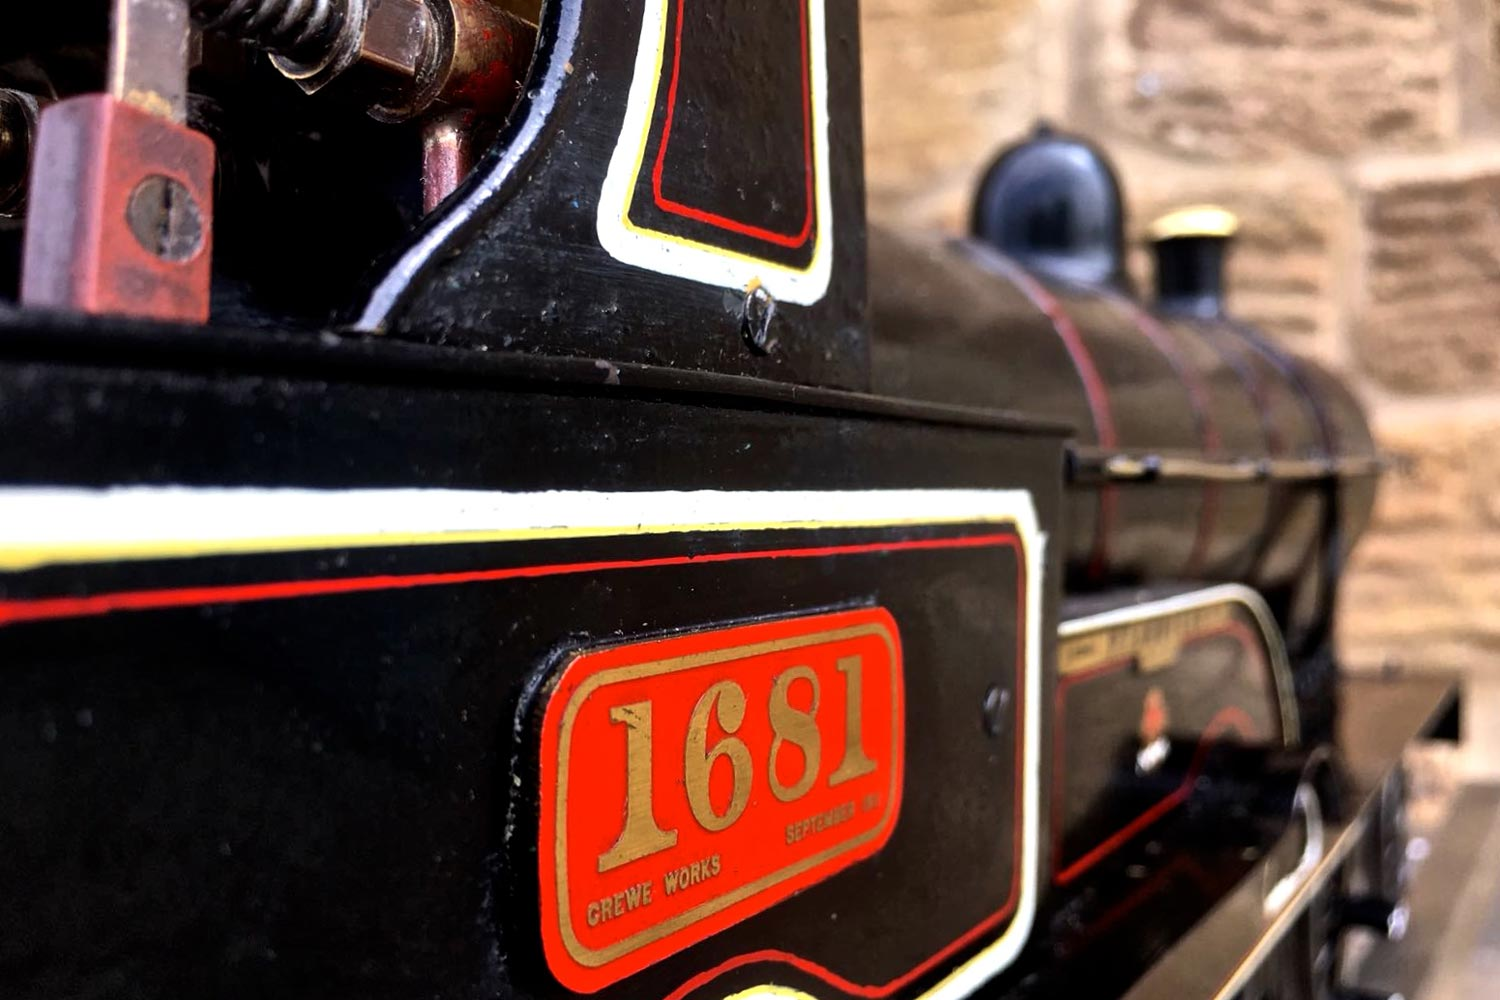 test 3-and-a-half-inch-LNWR-King-George-the-Fifth-live-steam-locomotive-for-sale-22